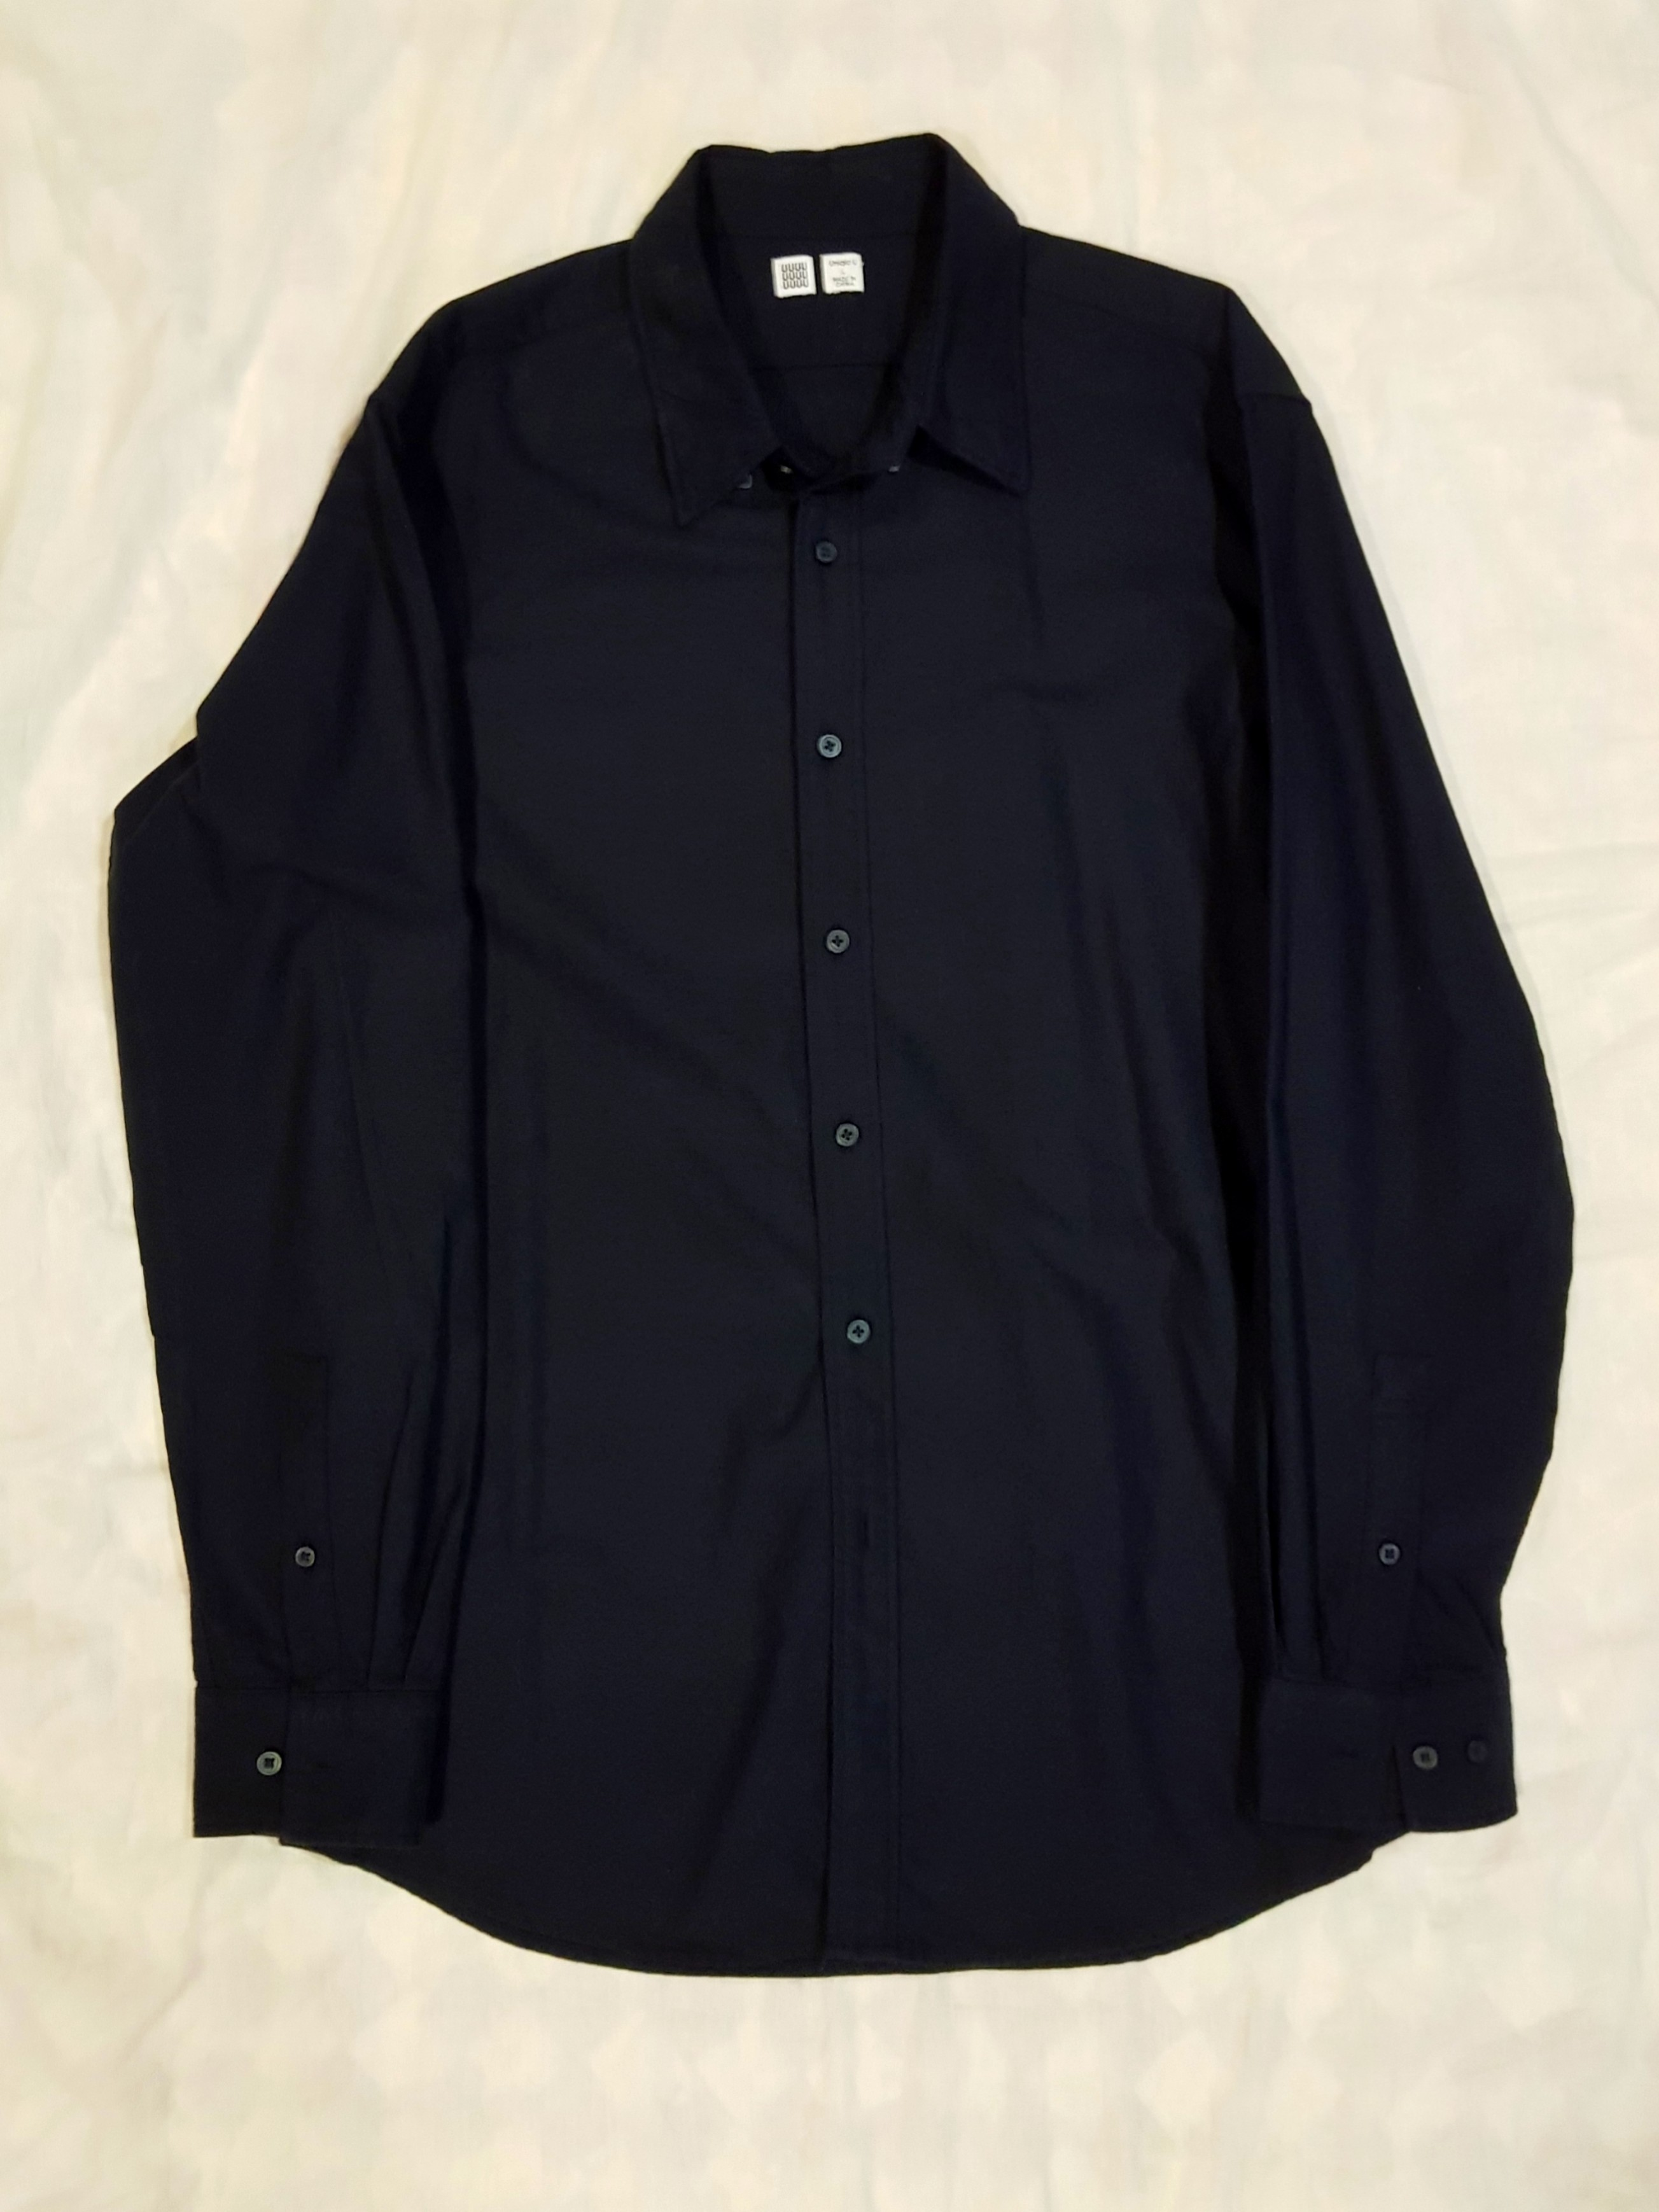 18afcd09e1 Uniqlo U oxford shirt, Men's Fashion, Clothes, Tops on Carousell